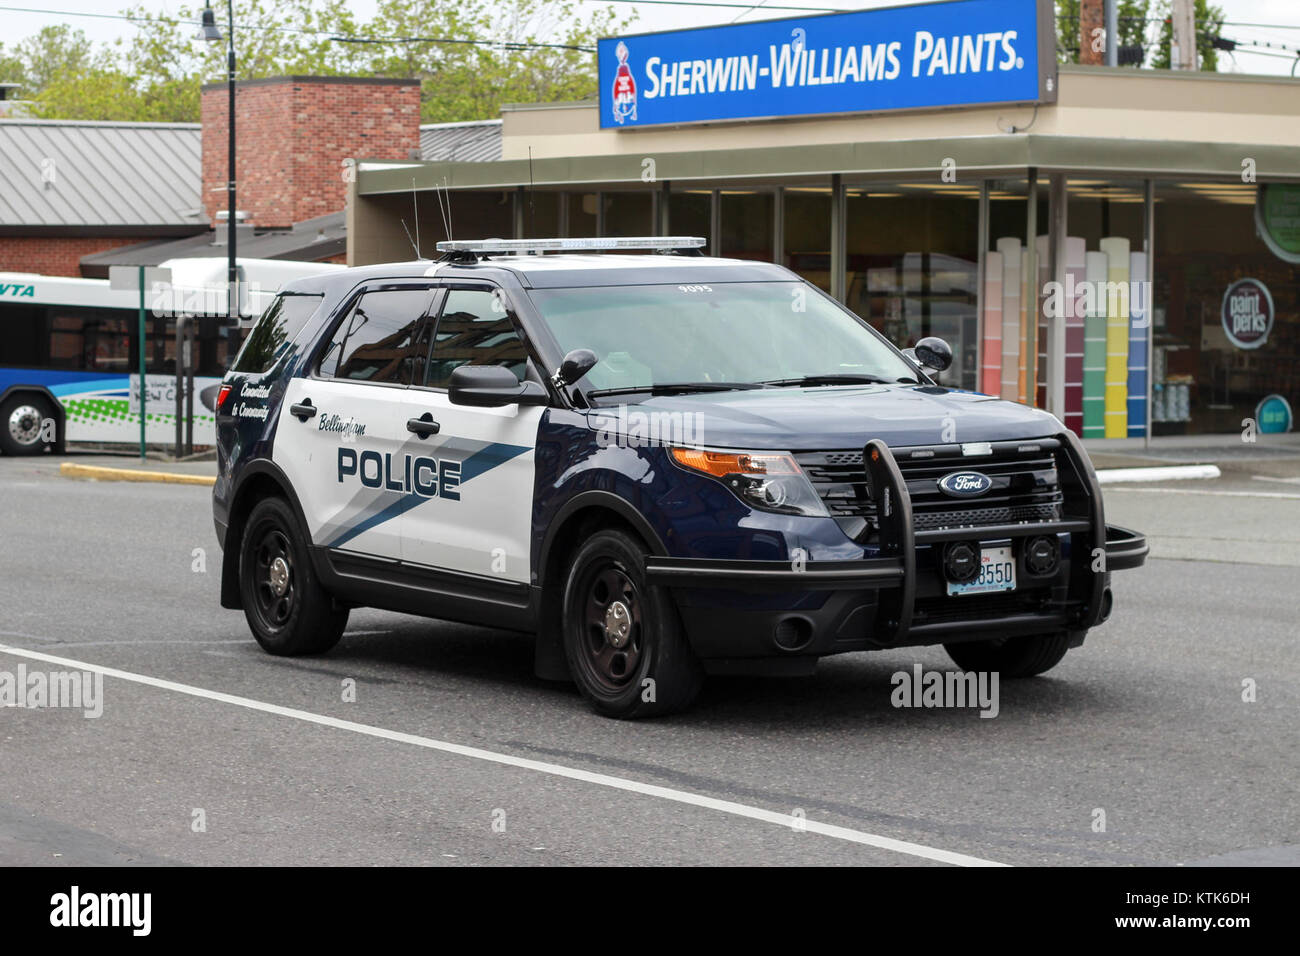 Bellingham Police Ford Police Utility   Stock Image